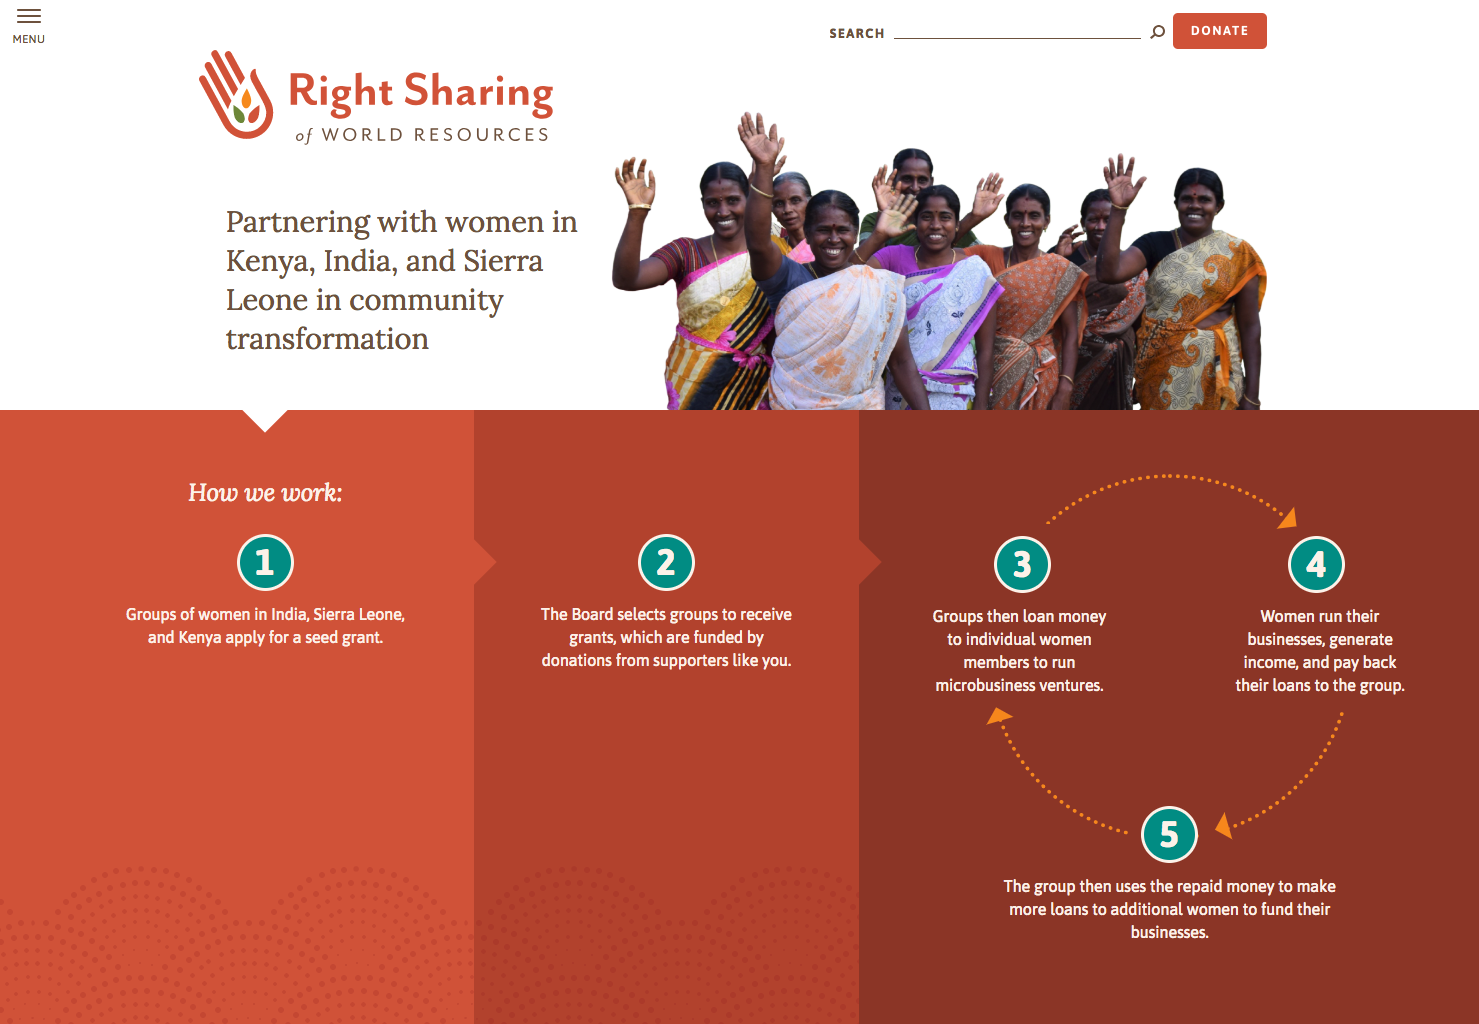 RSWR homepage shows a diagram showing that women apply for grants, the board selects recipients funded by donors, groups then loan money to individual women to run microbusinesses, those women pay back their loans, group then uses repaid loans to make more loans